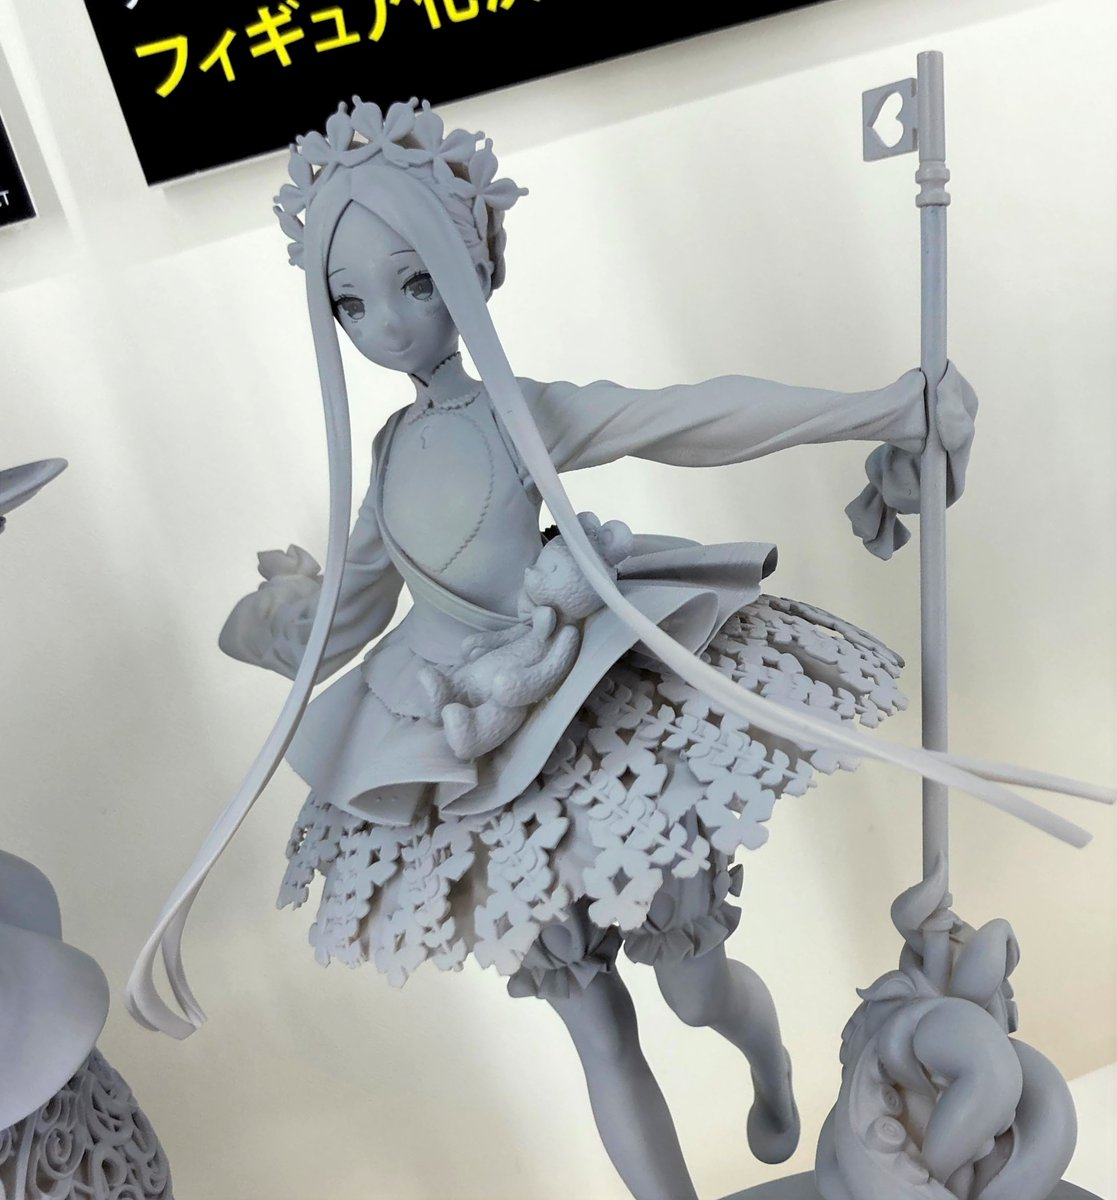 Fate/Grand Order - Fate/Grand Order 1/7 (Aniplex)